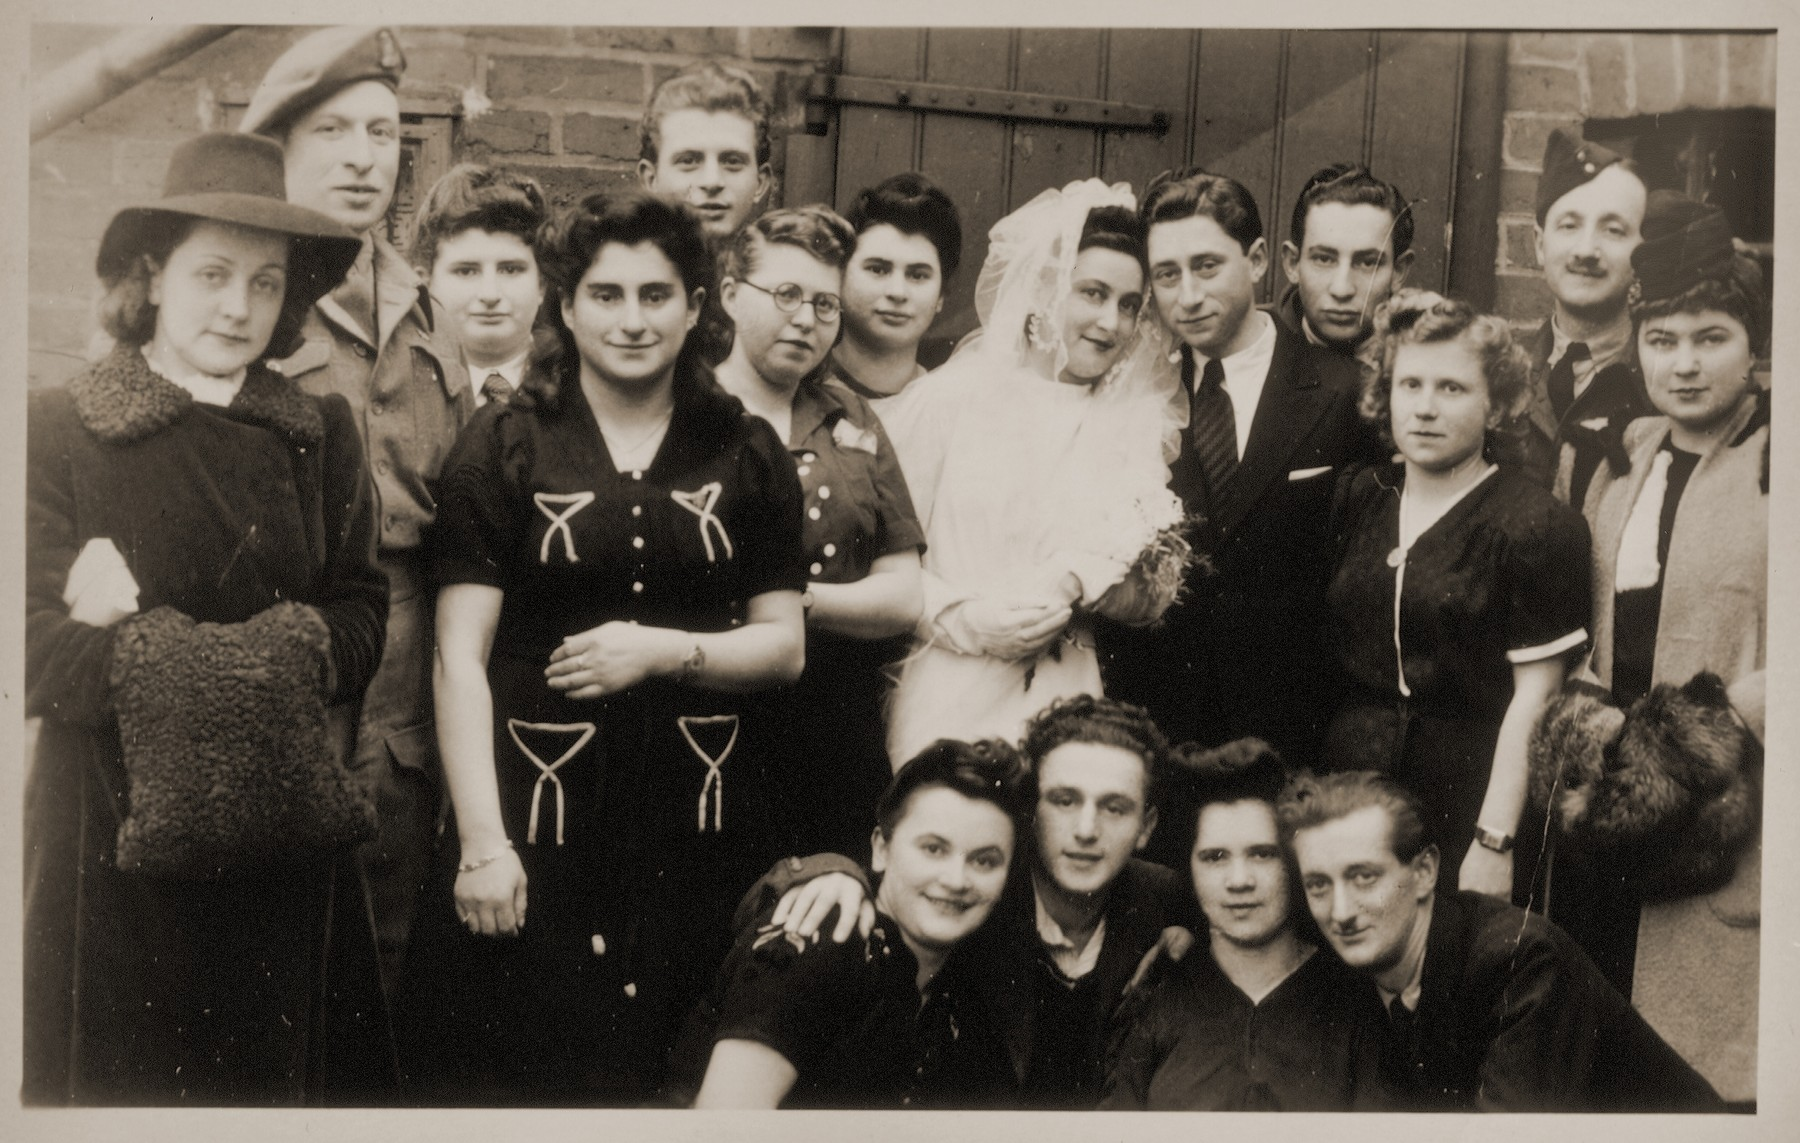 Joli Josef from Romania and Gerhard Cohn from Germany pose with their wedding guests in the Bergen-Belsen displaced persons camp.  Joli Josef is one of 17 to 20 in the Celle and Belsen DP camps who wore the gown that Lilly Friedman had made from an old German parachute her husband purchased for the purpose.